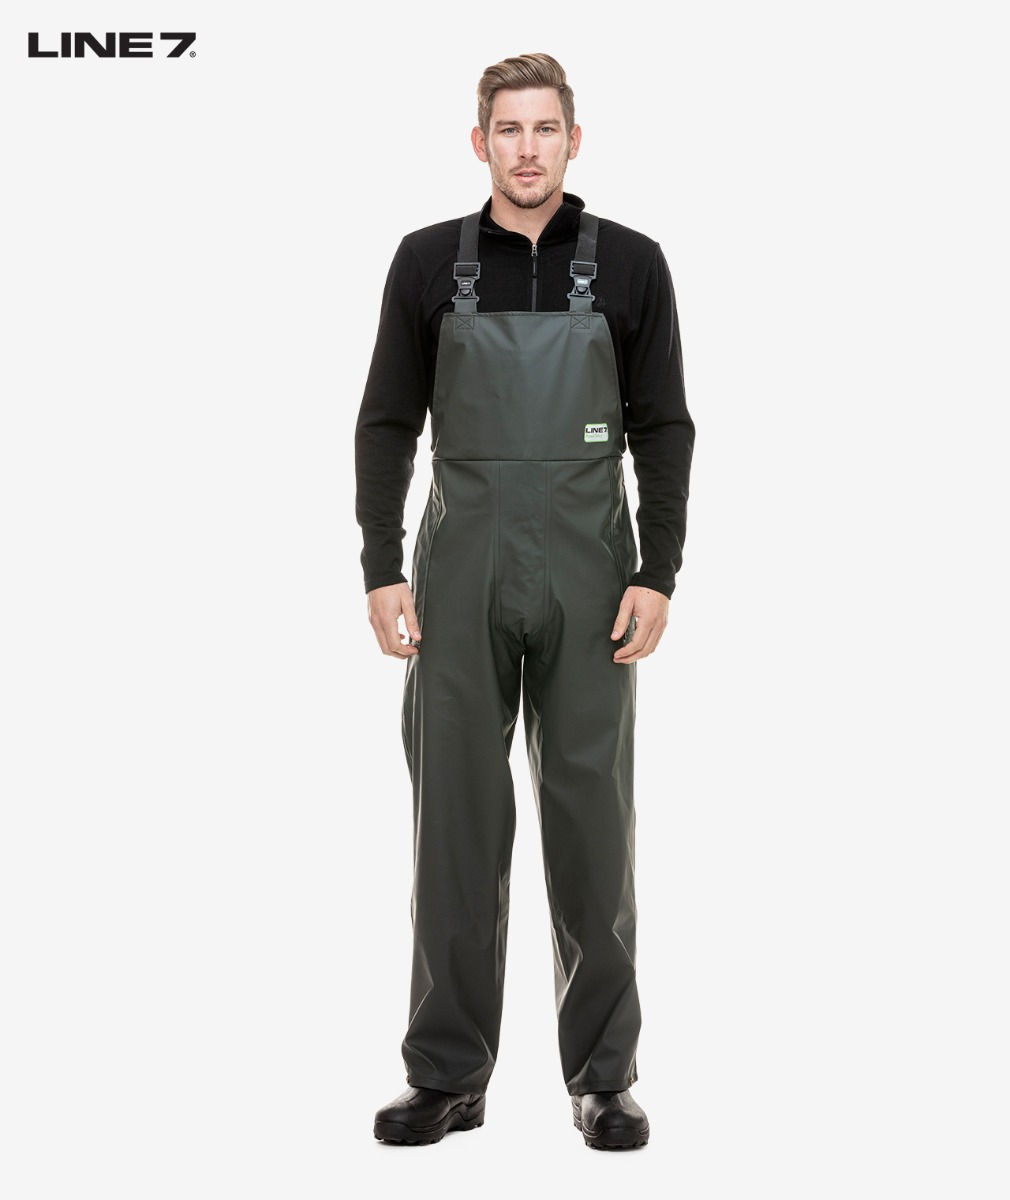 Line 7 Men's Aqua Dairy Waterproof Bib Trouser